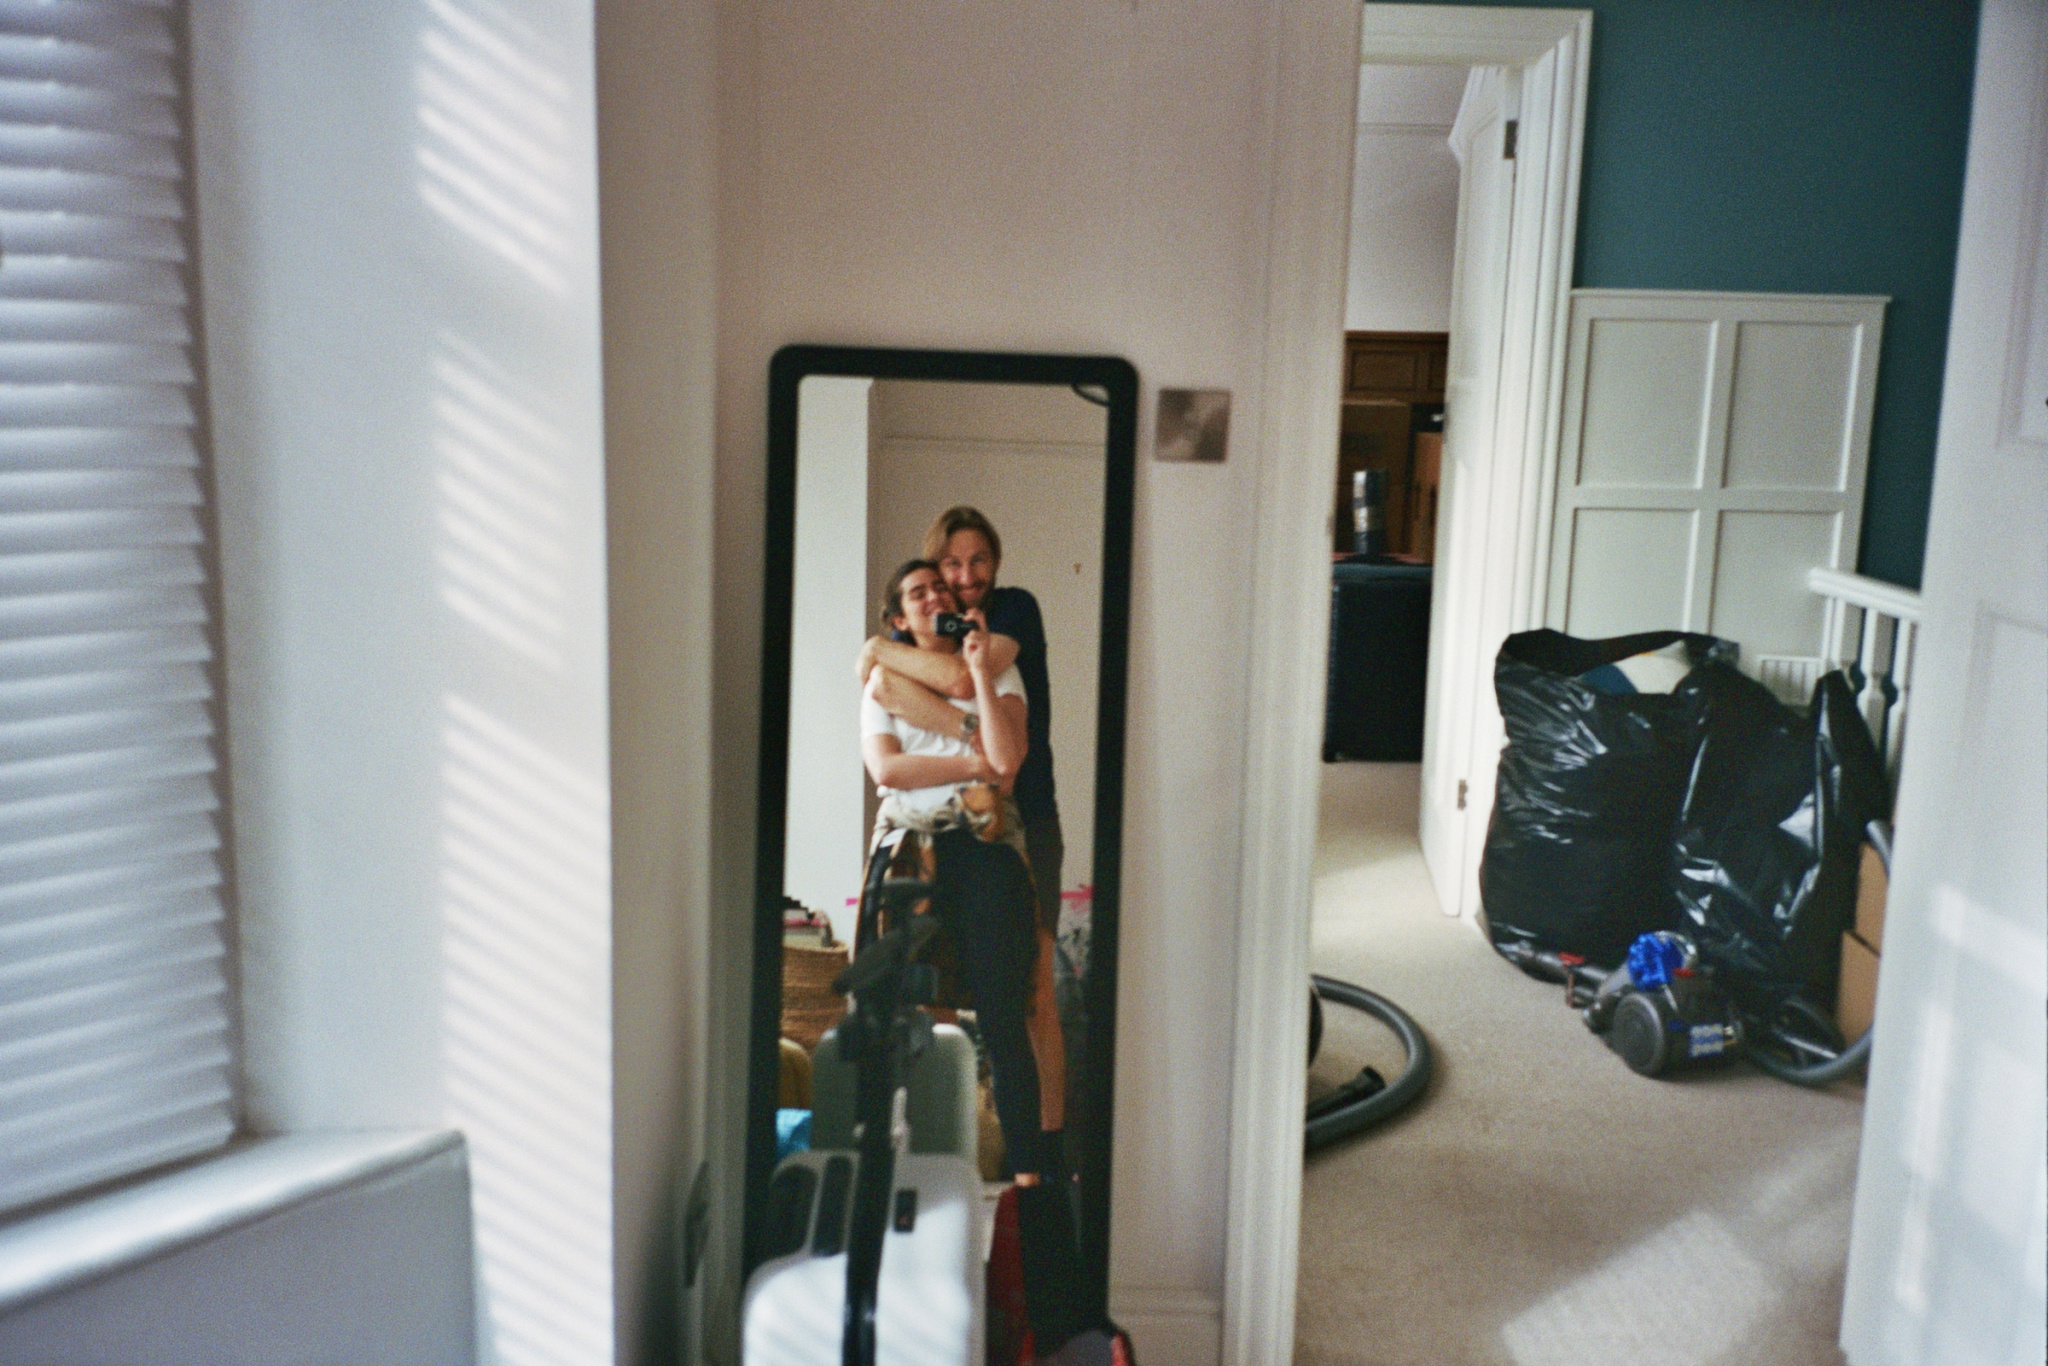 A picture of Anna and Mark in front of their mirror in the midst of packing